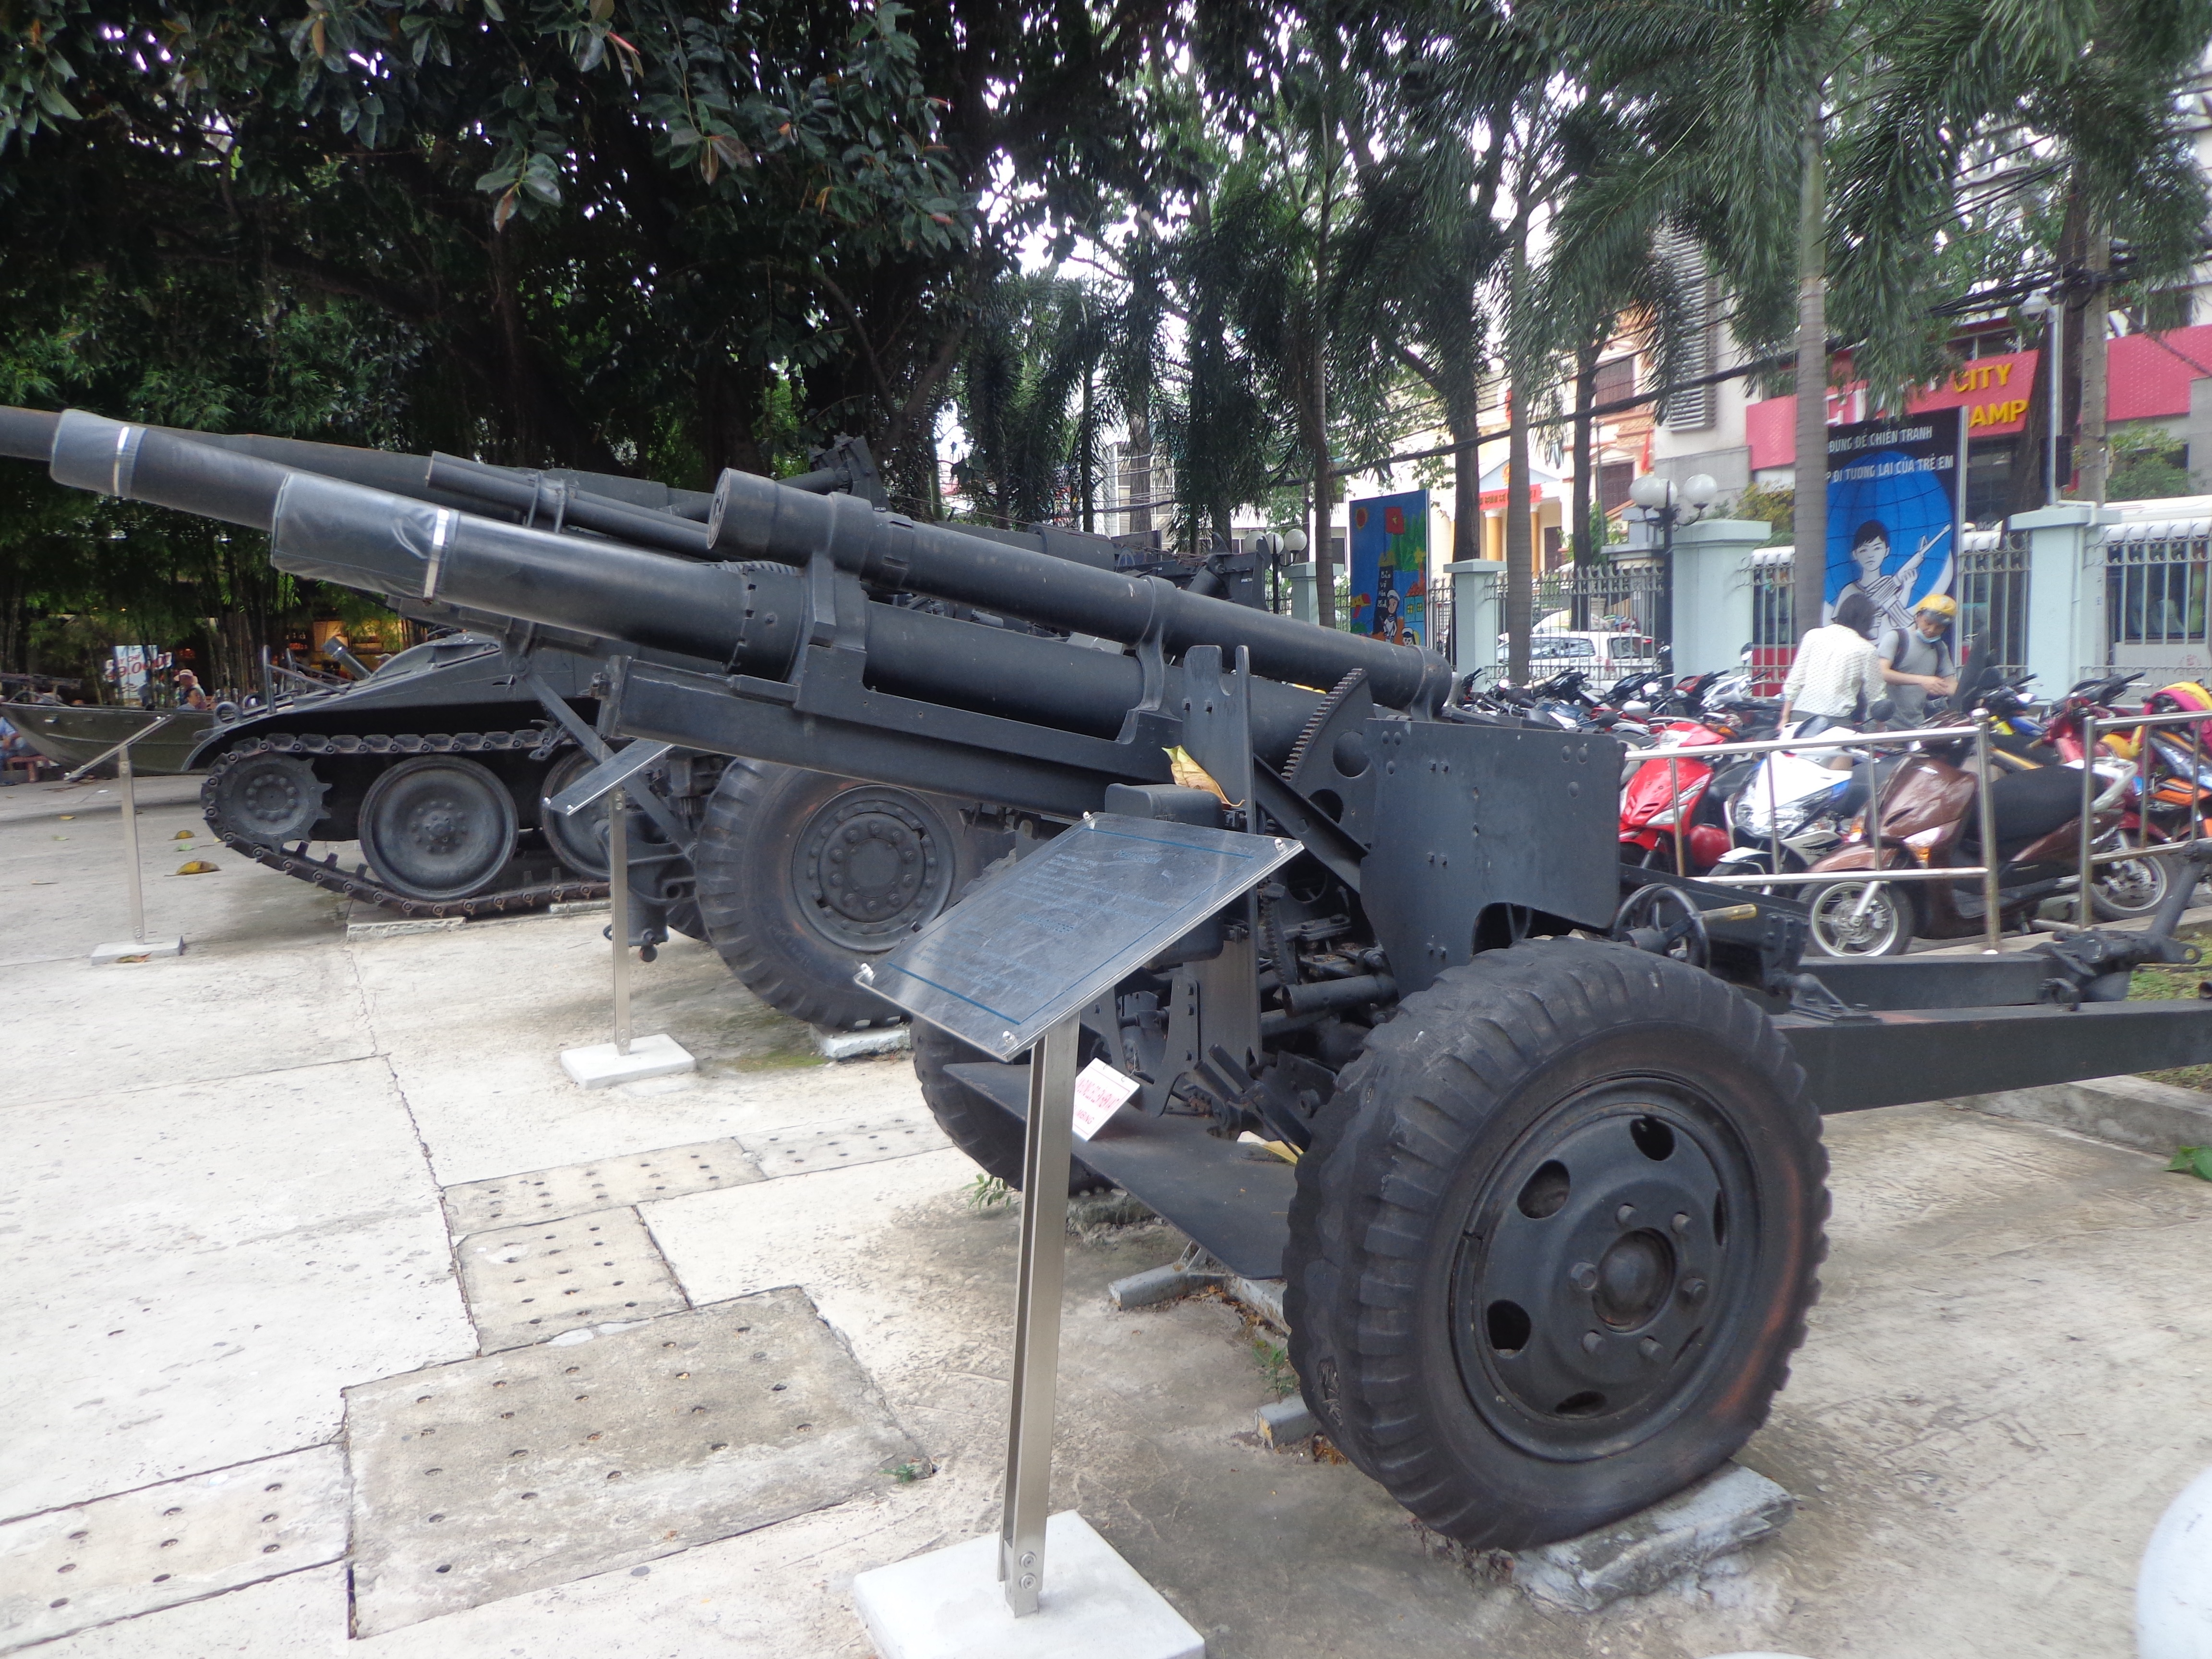 Some heavy artillery on display outside the museum building.